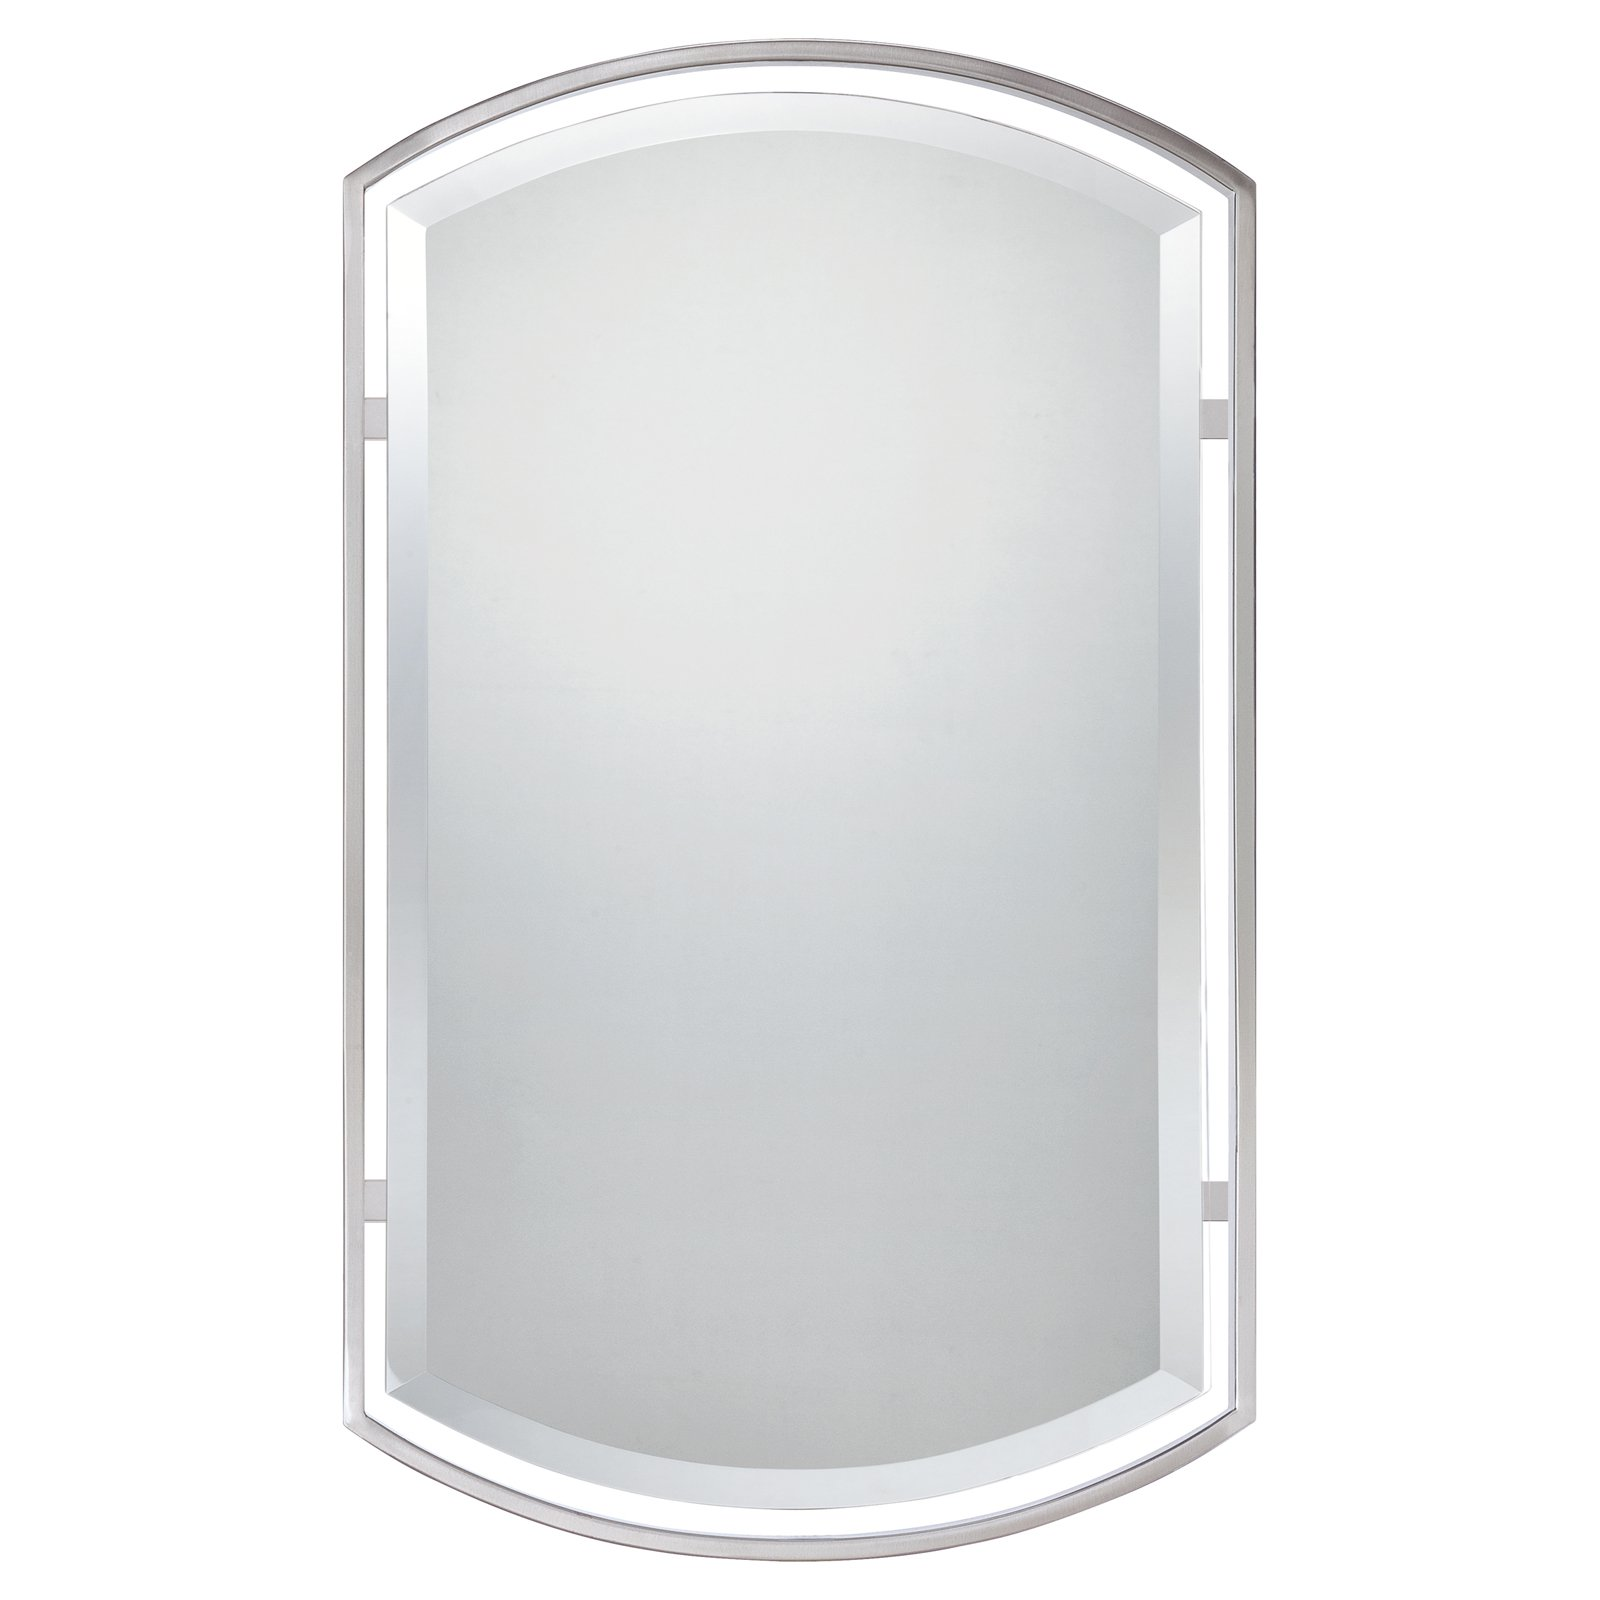 Quoizel Breckenridge Small Wall Mirror 21W x 35H in. by Quoizel